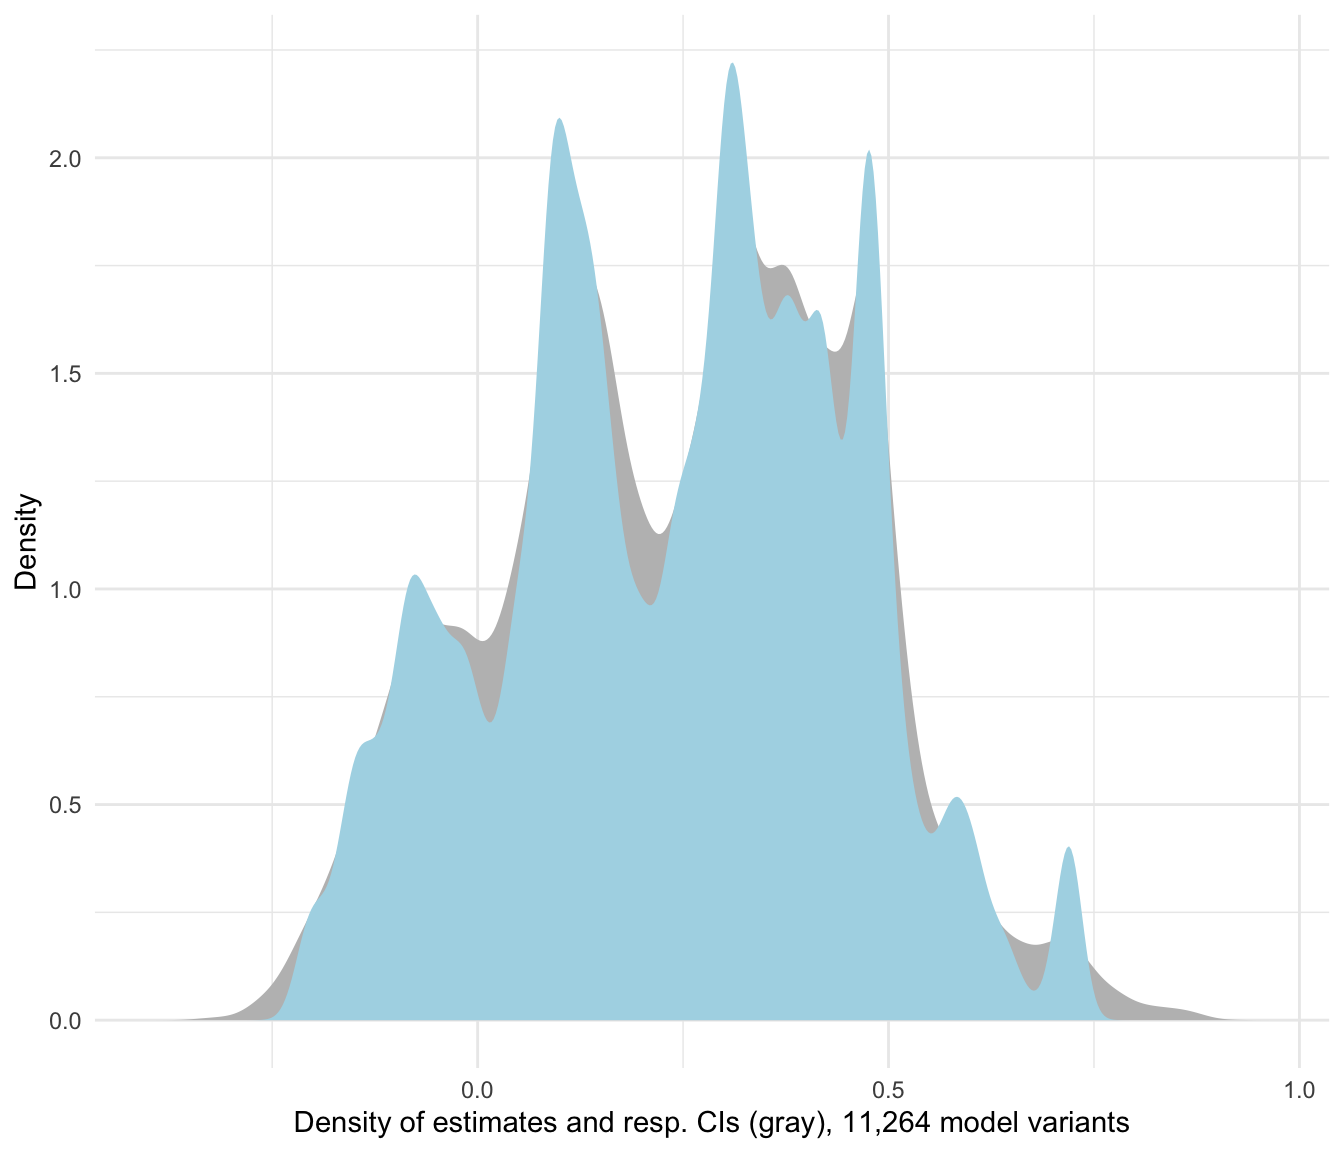 Estimate density for all researcher degrees of freedom